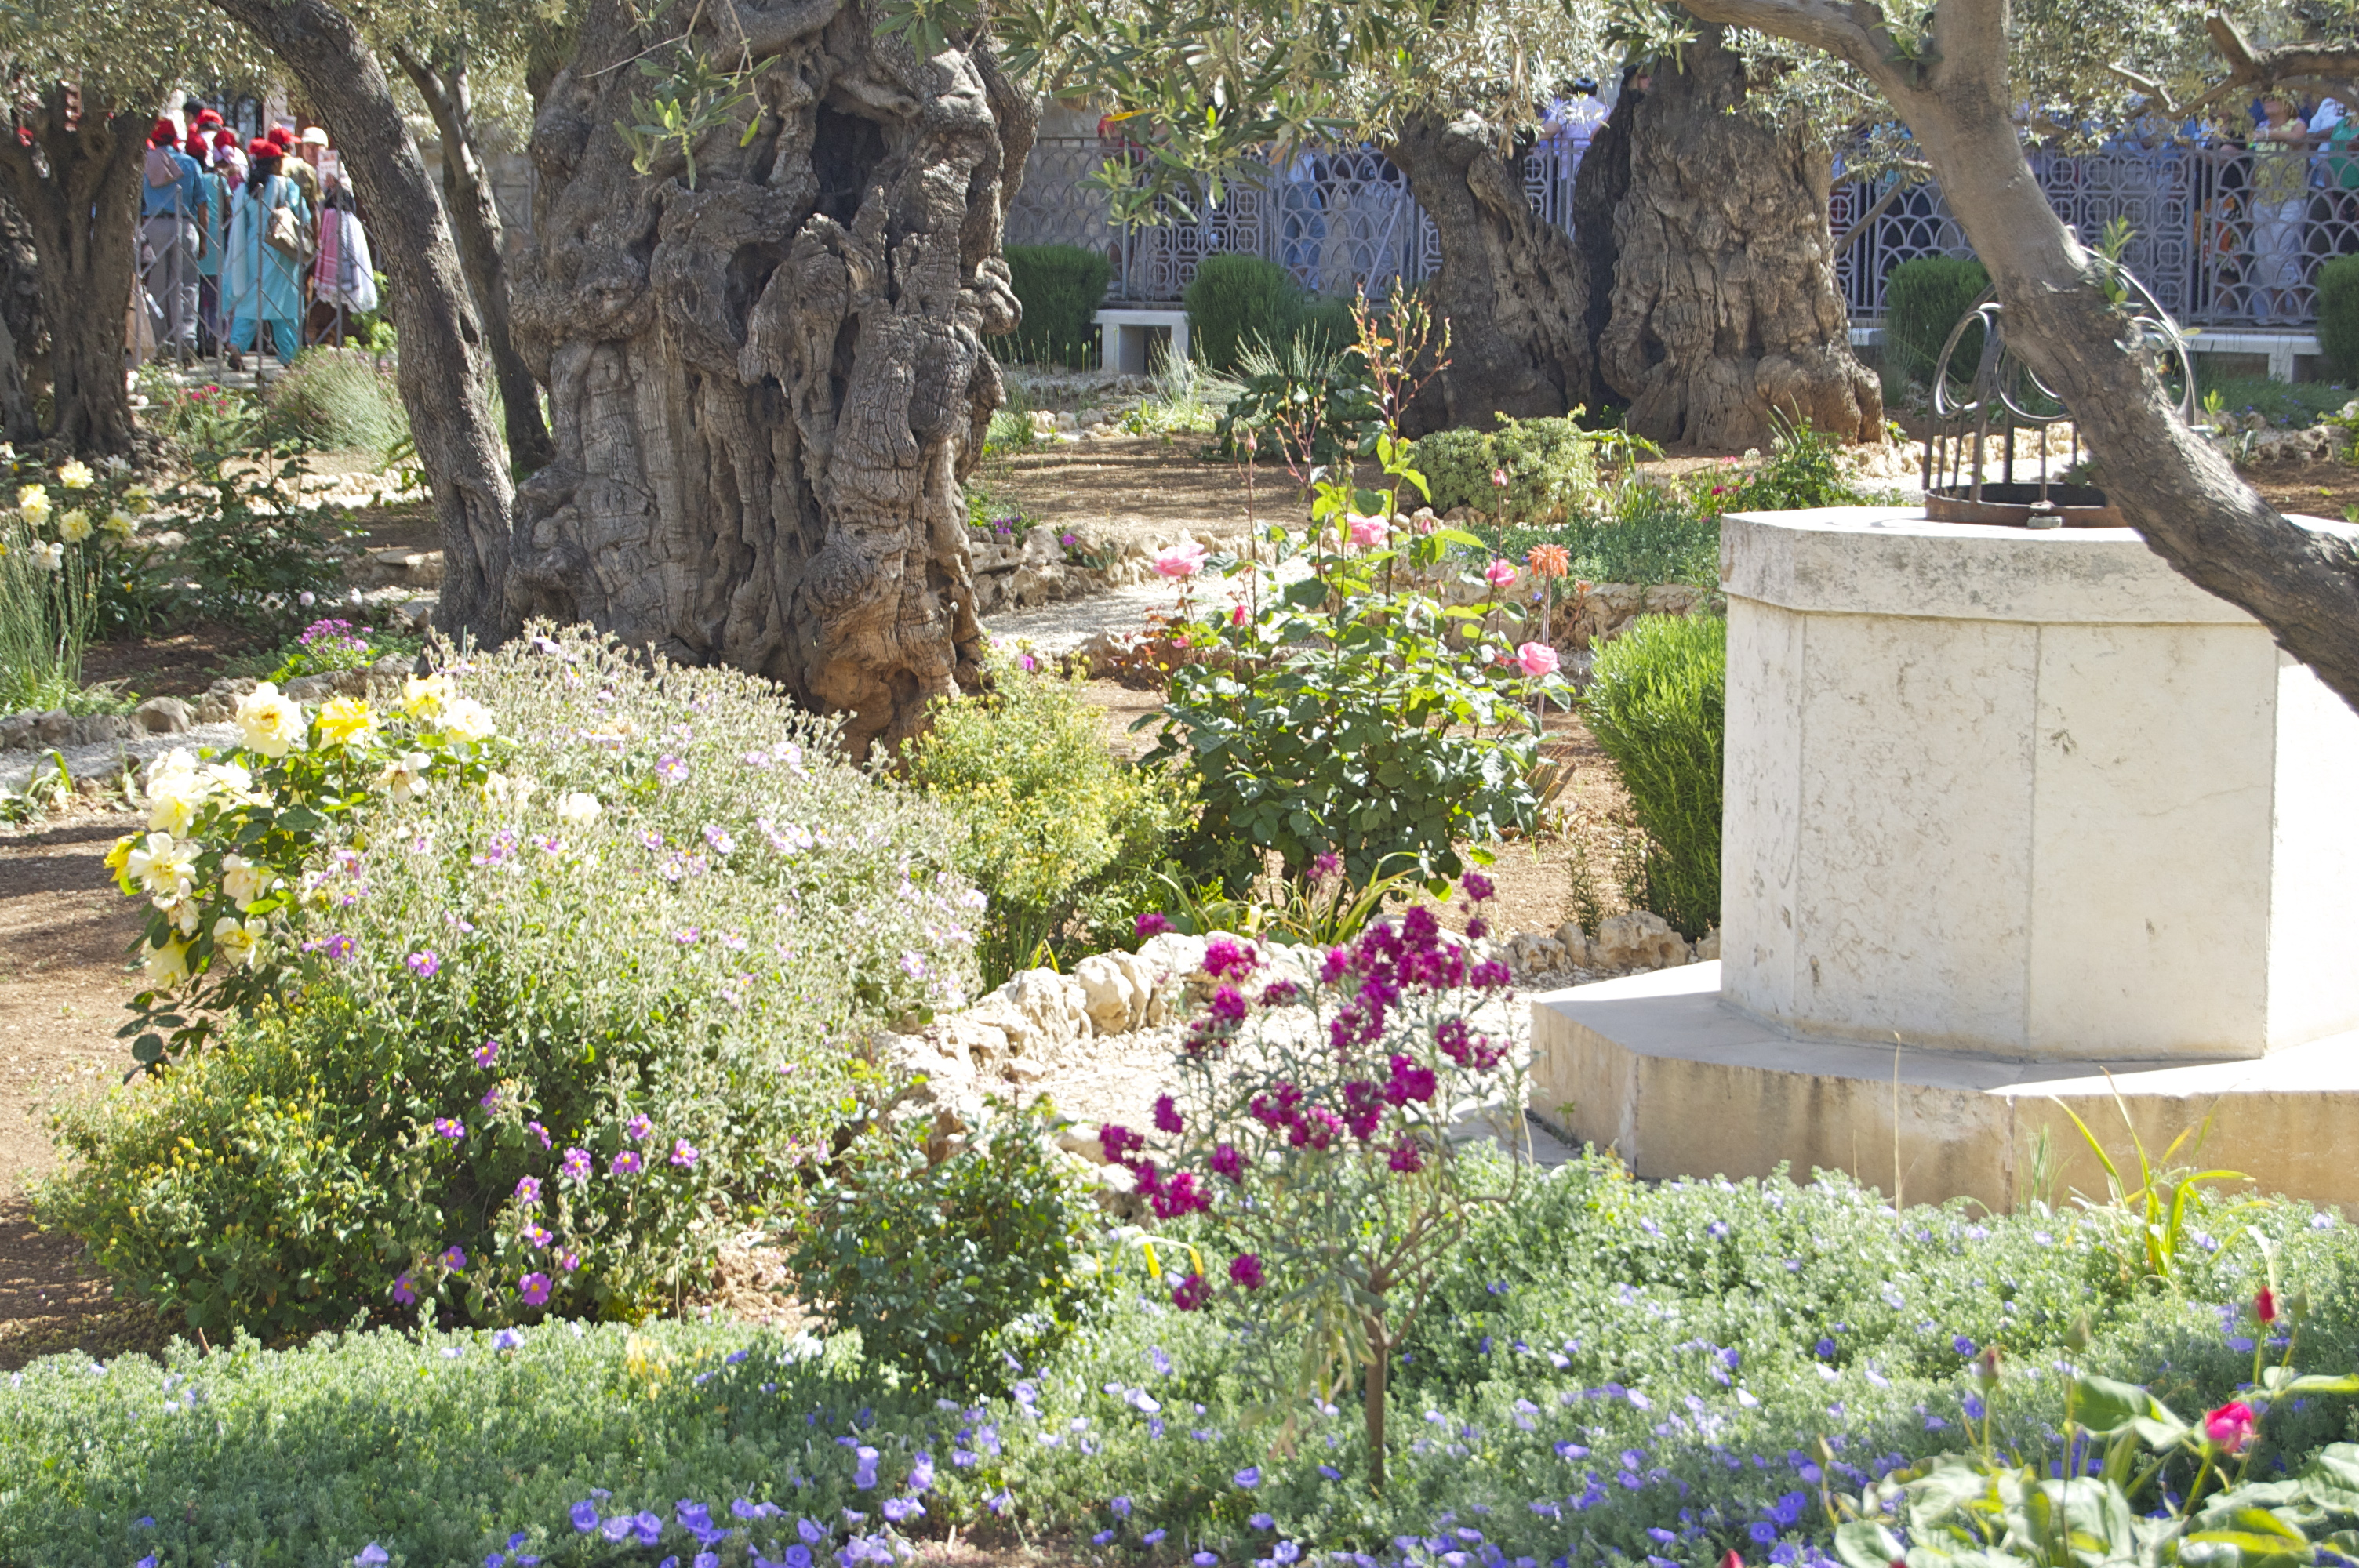 Garden View of Gethsemane